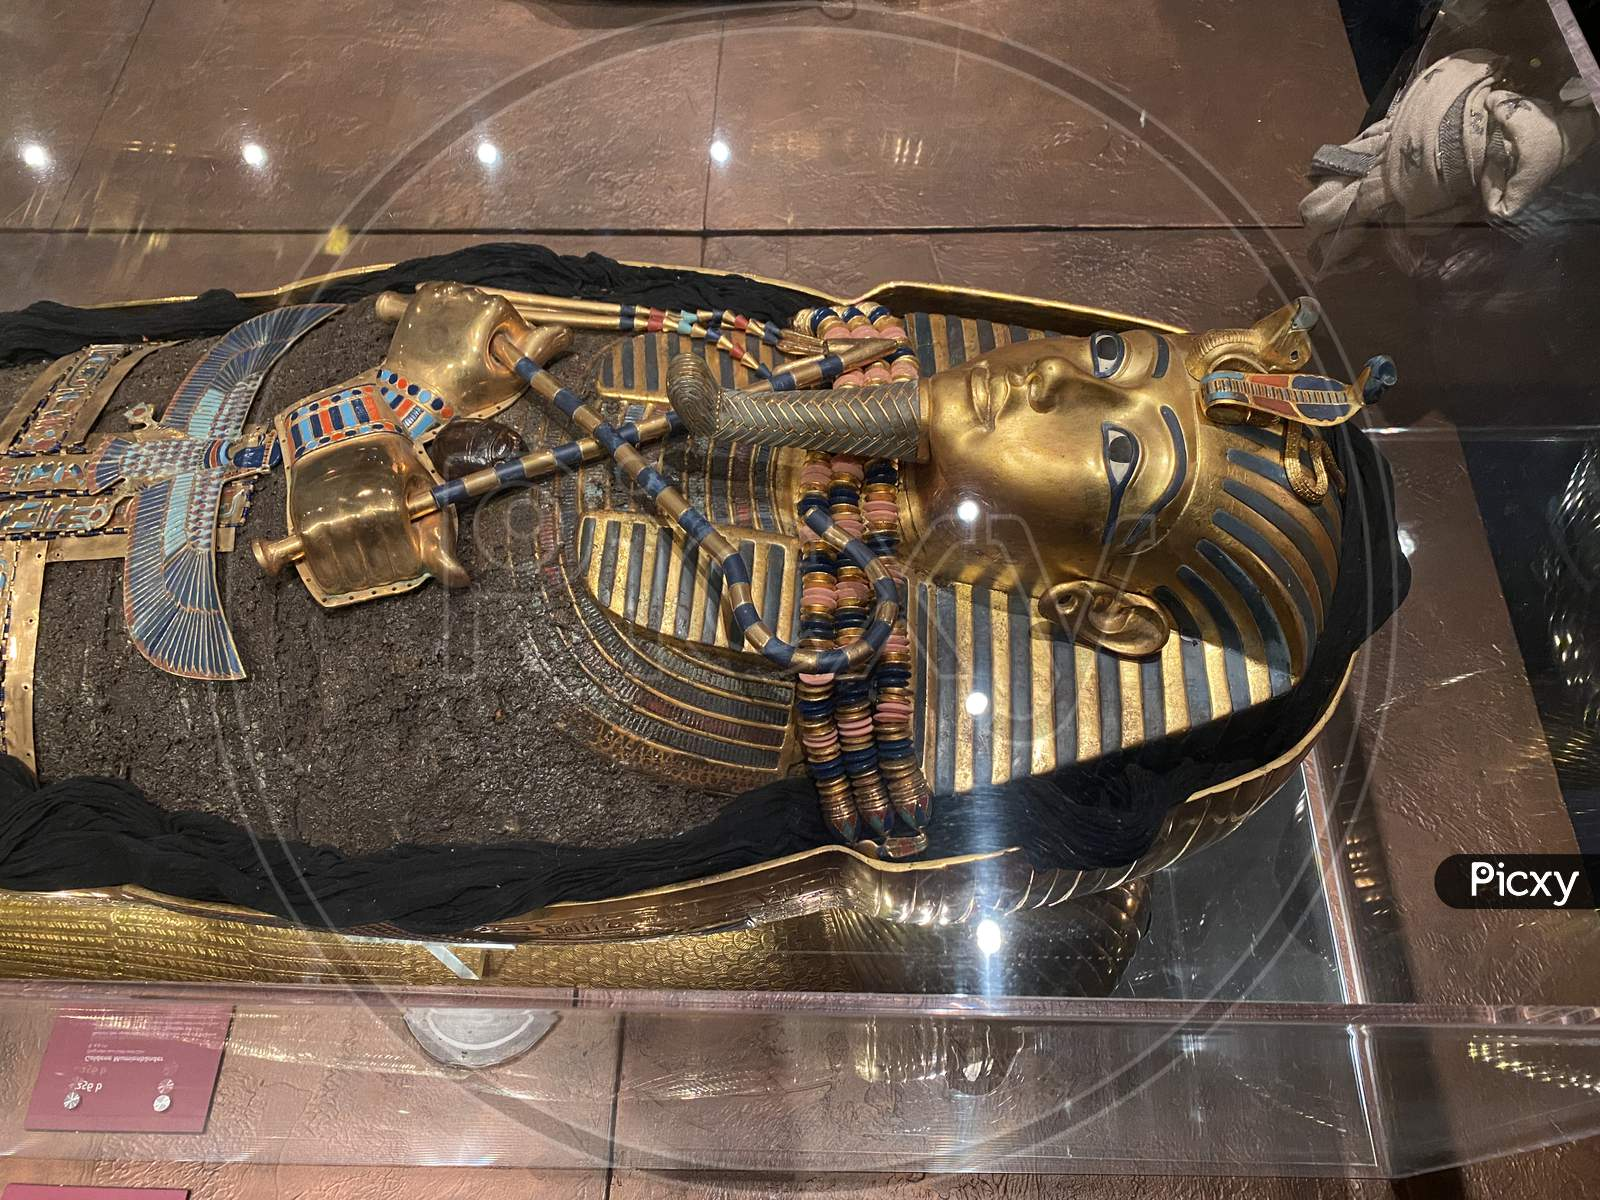 Tomb And Treasures With Gold Mask And Replicas From Egypt Pharaoh Tutankhamun. 14.03.2021 - Oerlikon, Switzerland.